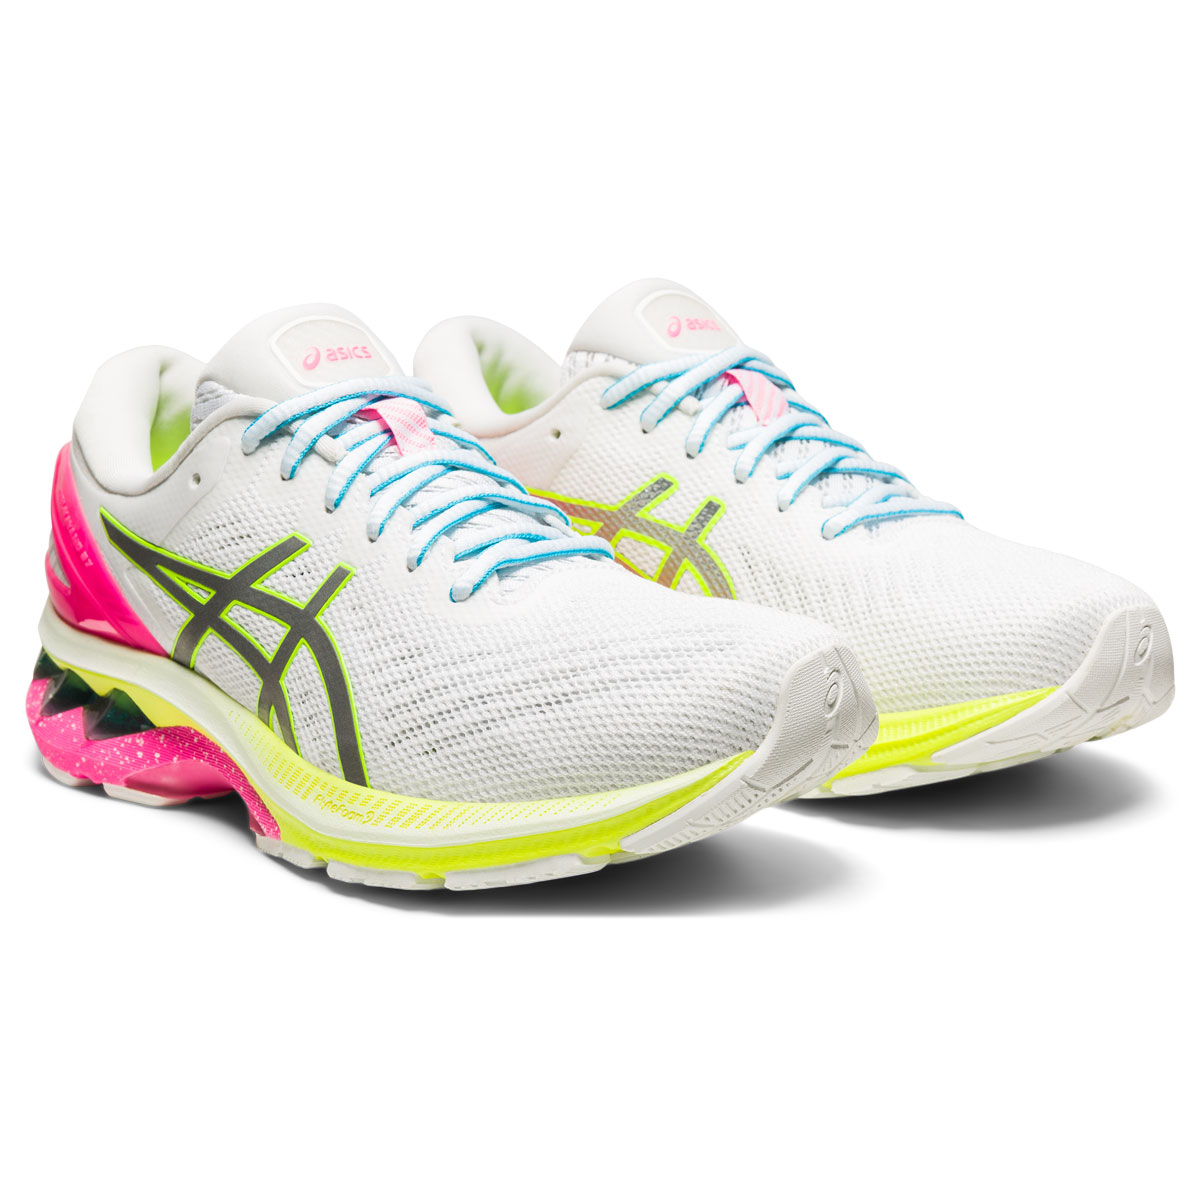 Women's Asics GEL-Kayano 27 Lite-Show Running Shoe - Color: White/Pure Silv (Regular Width) - Size: 5, White/Pure Silver, large, image 3